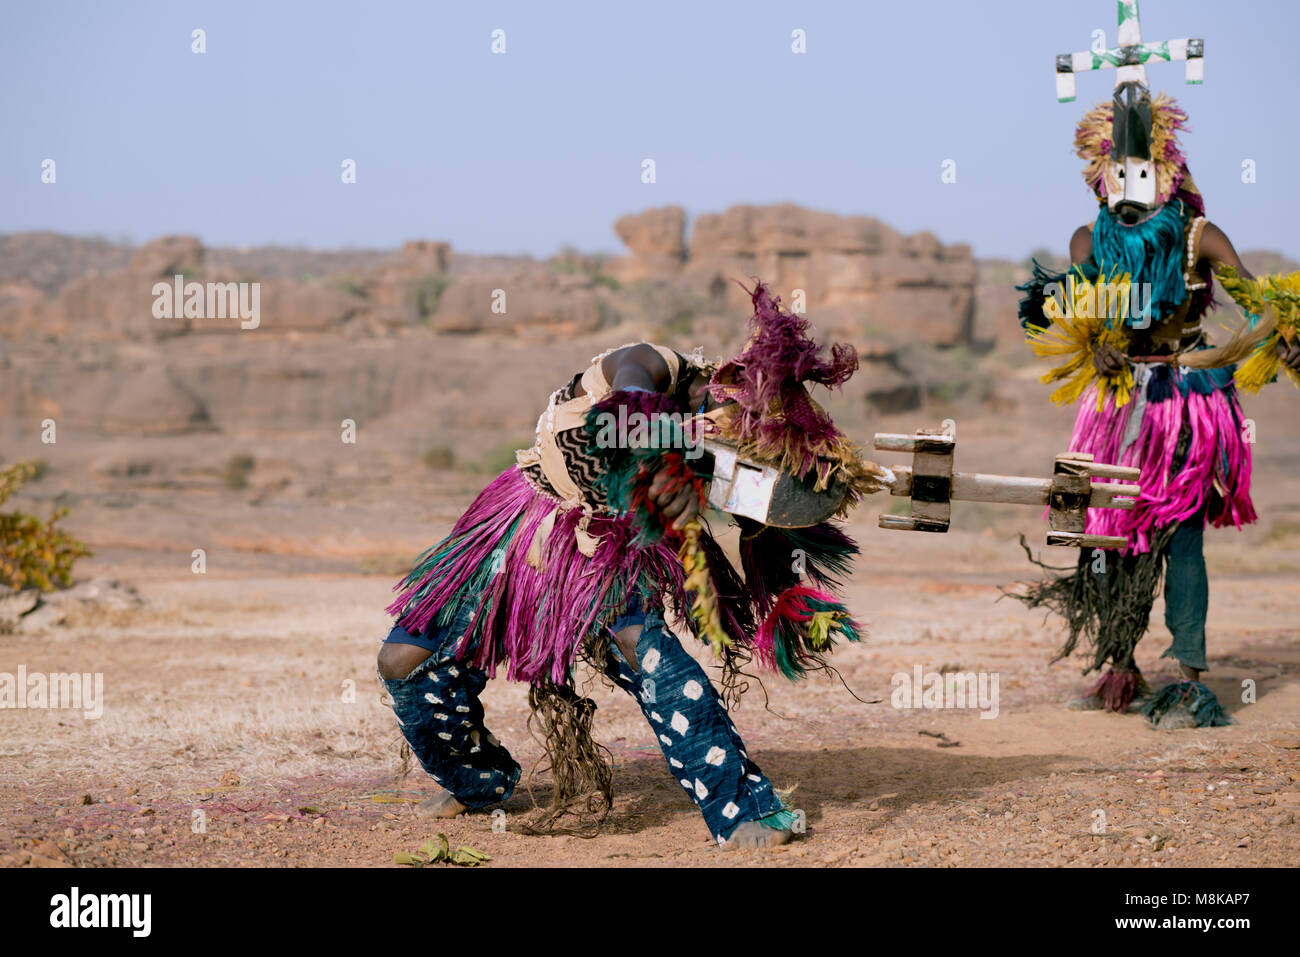 A Dogon man twists and turns while wearing a large mask and headdress and performing a traditional tribal dance. - Stock Image